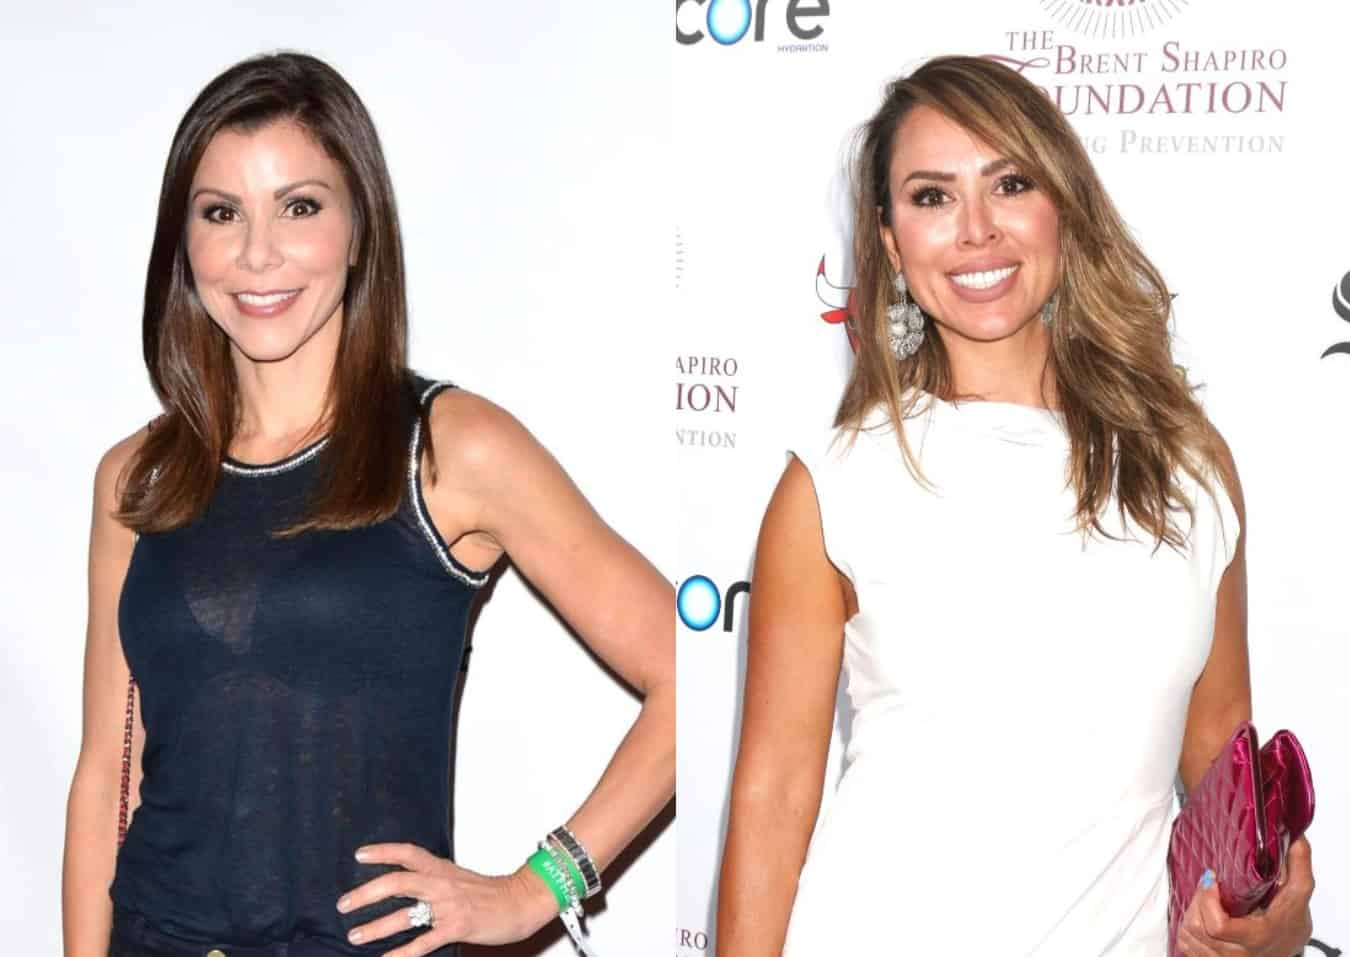 Heather Dubrow Addresses RHOC Boycott and Kelly Dodd Being 'Canceled,' Plus She Reveals Near-#MeToo Experience and Teases a New Family Reality Show